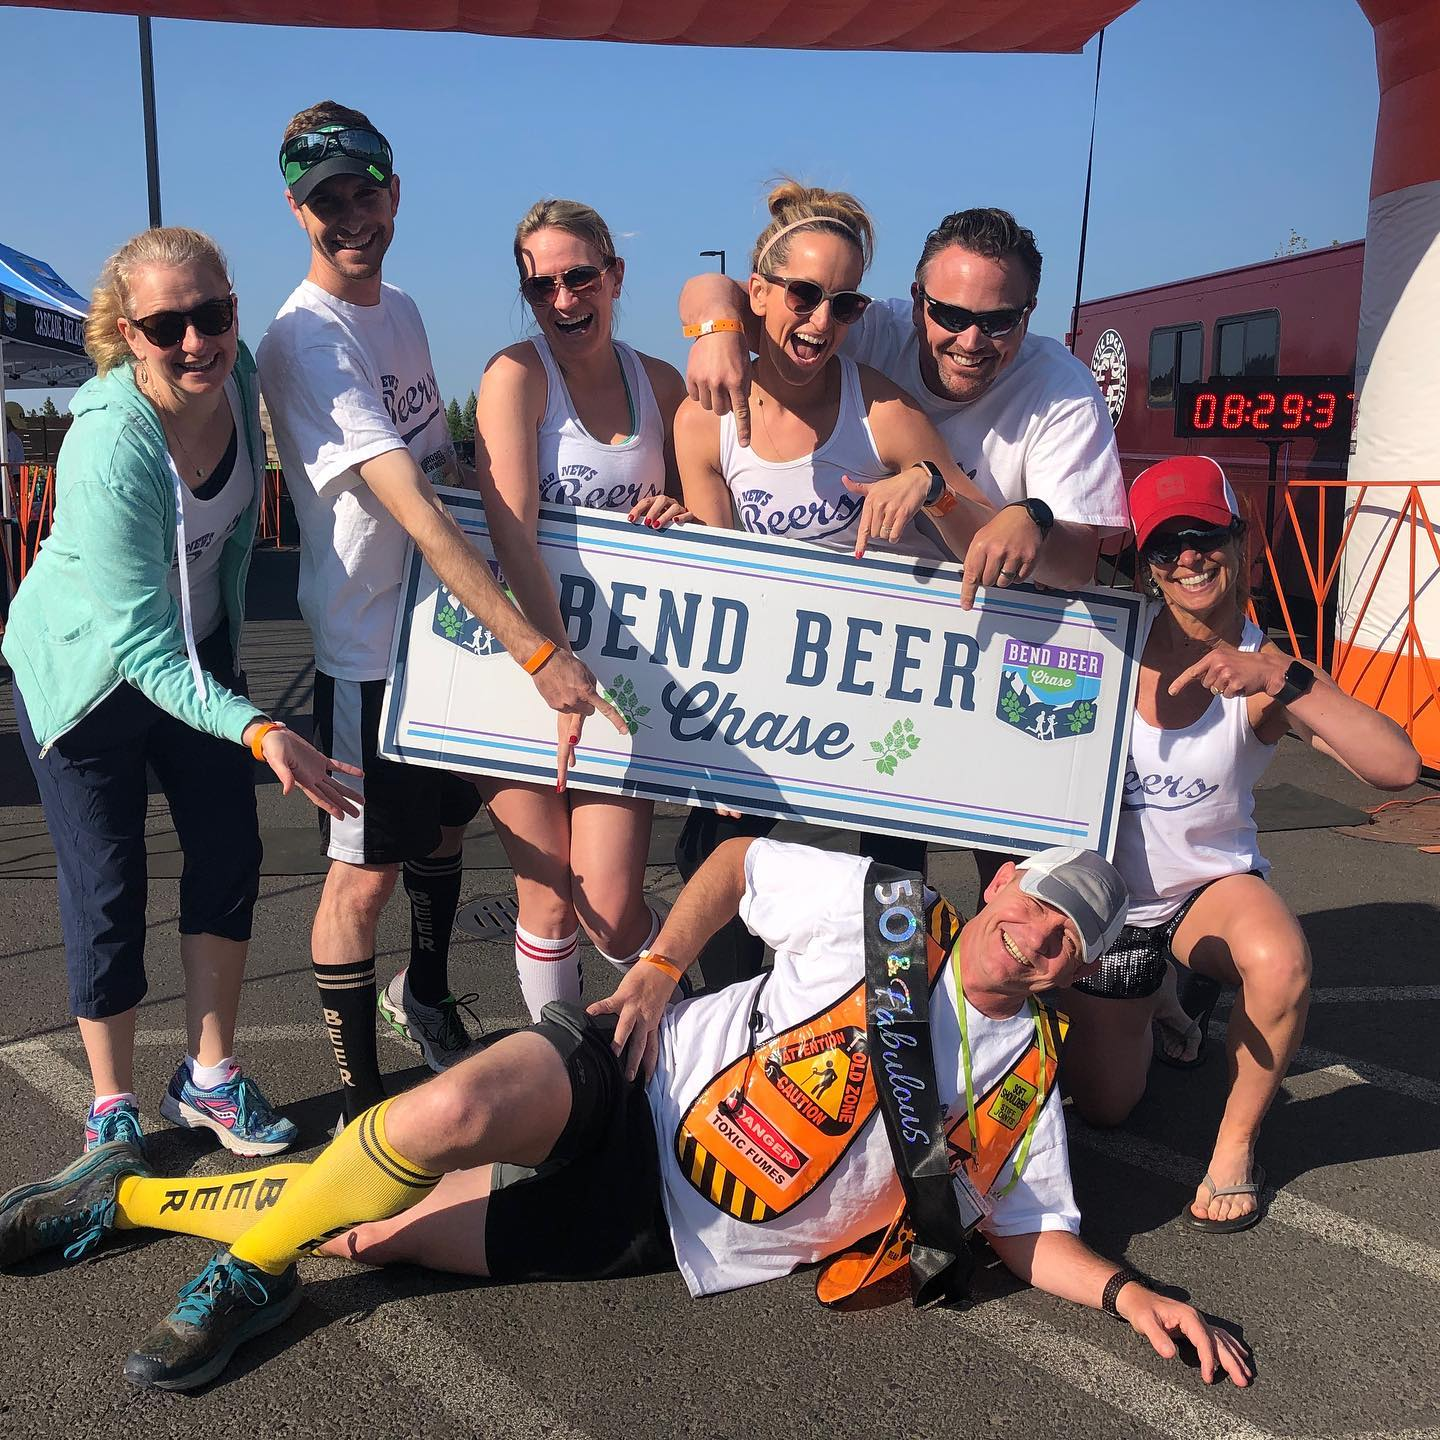 Team Feature: Bad News Beers – Ablis CBD Sponsored Team